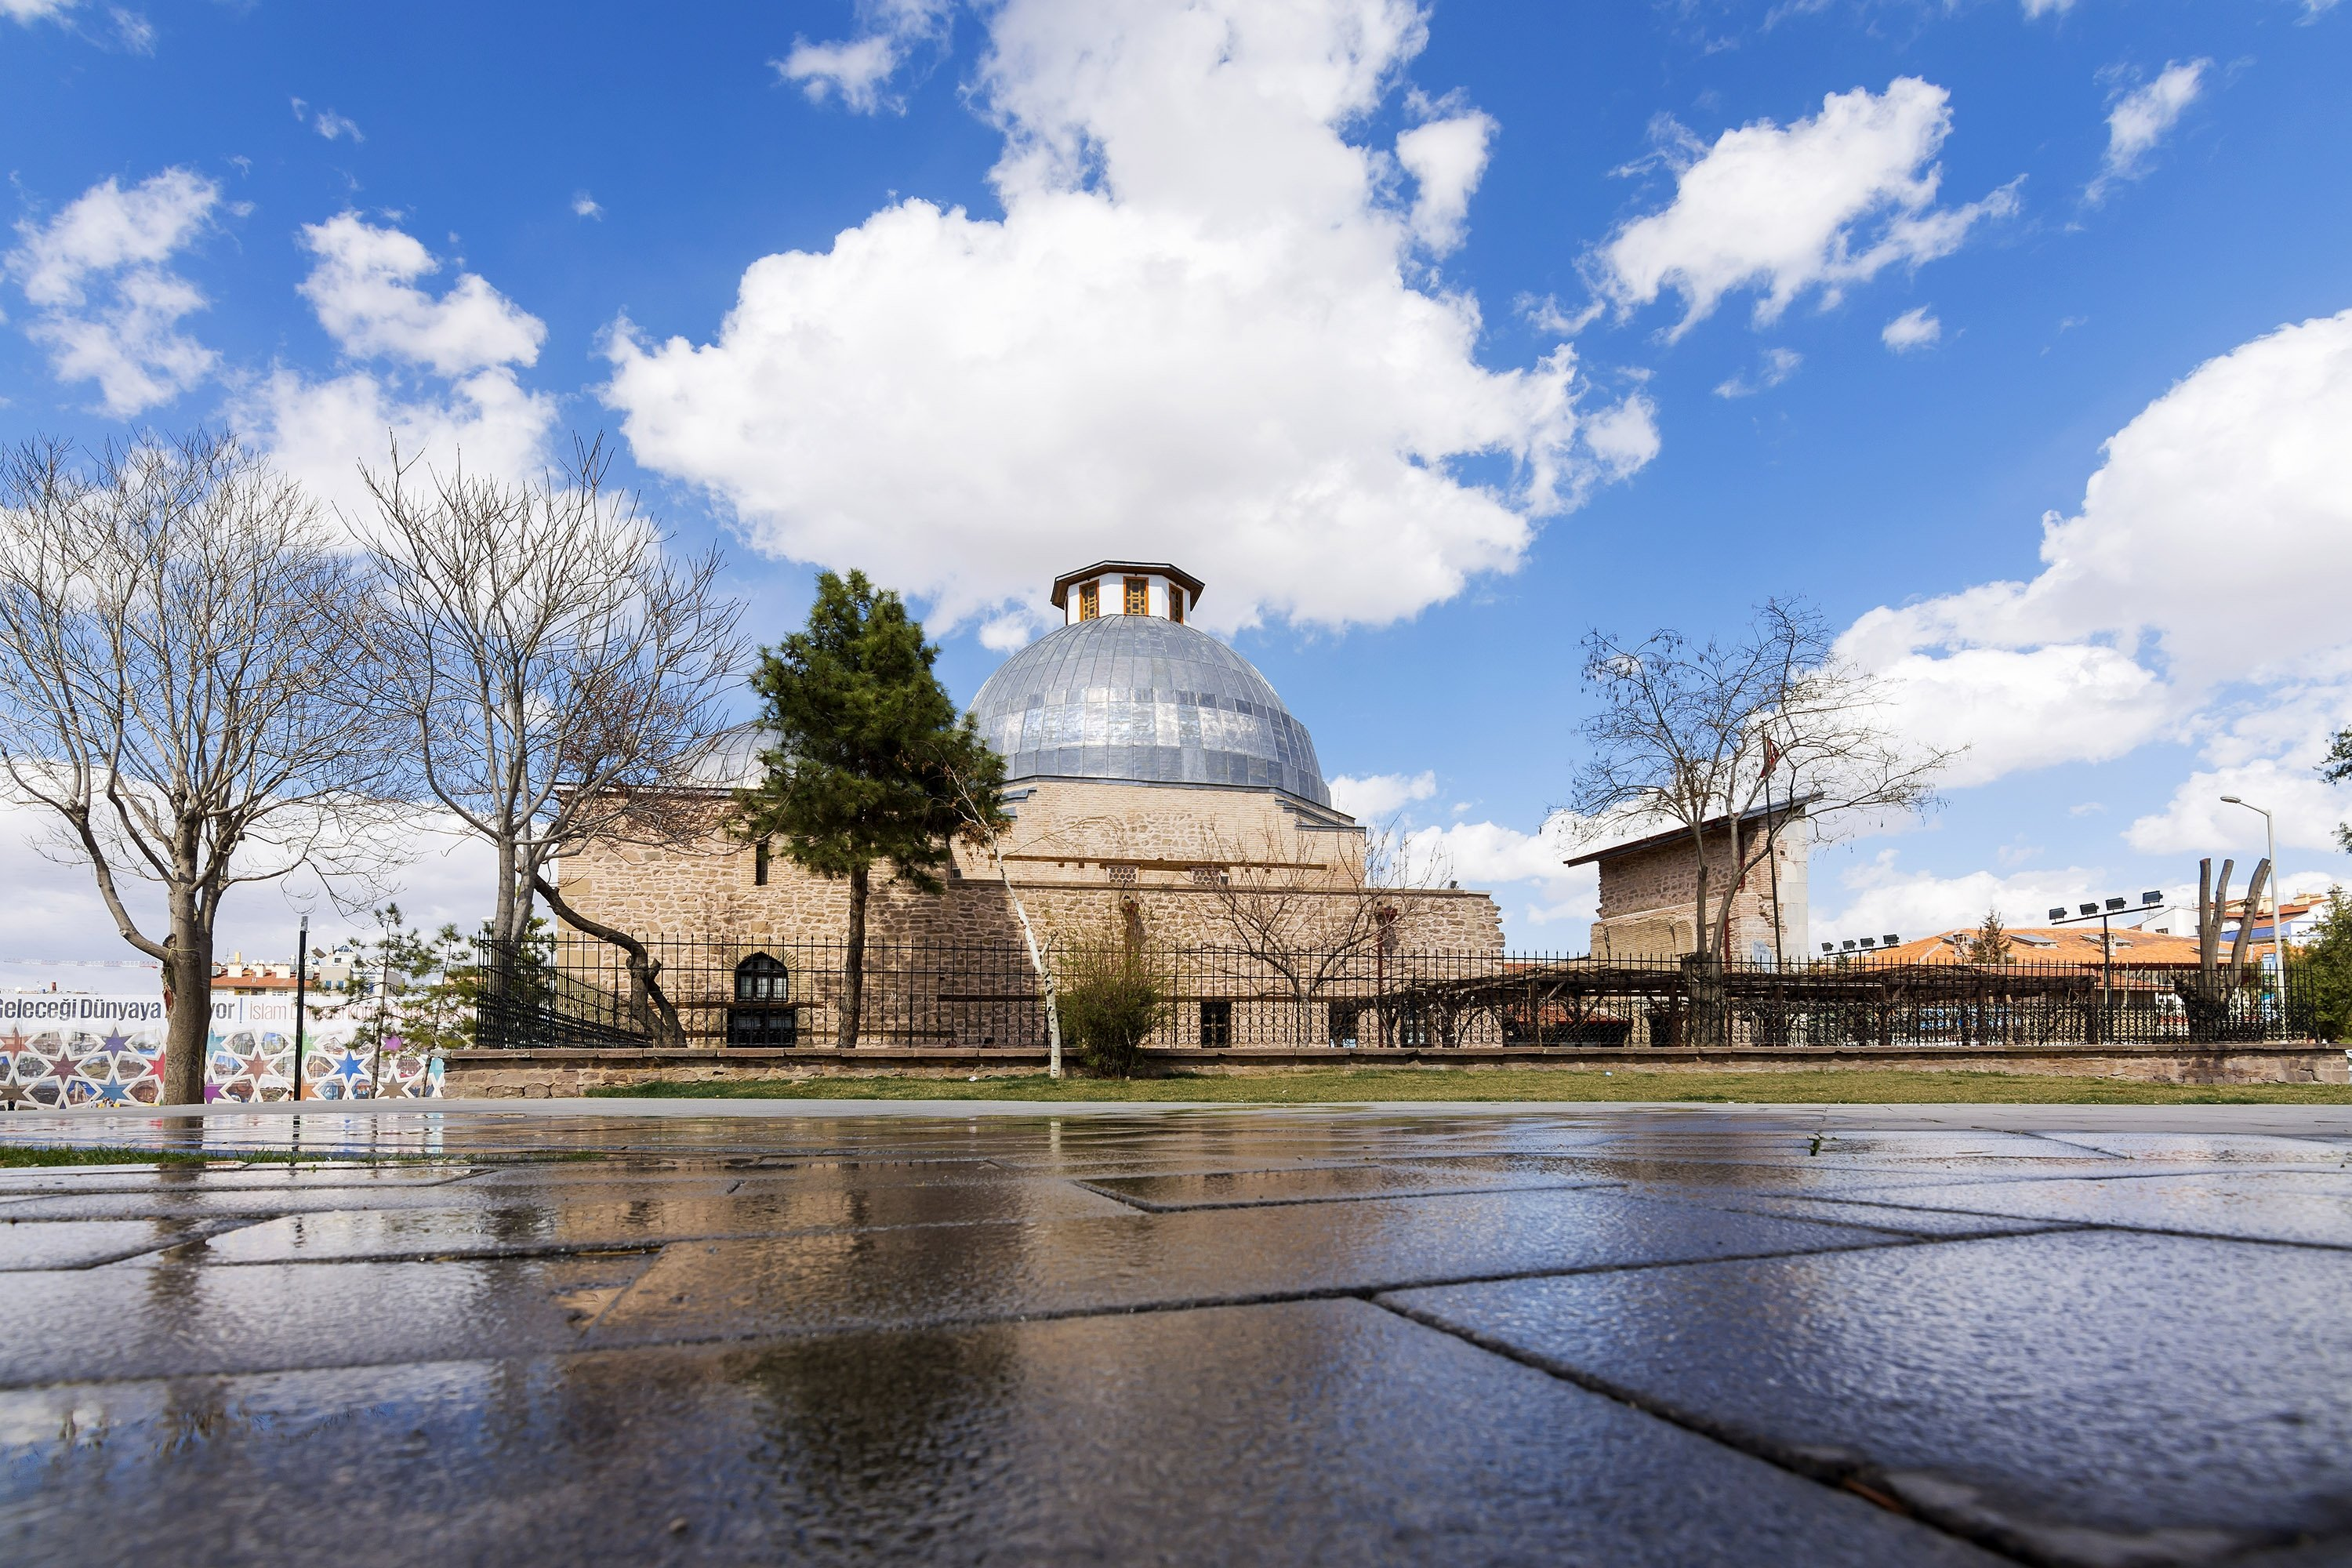 The Karatay Madrassa and its reflection are seen on a road in Konya, central Turkey, March 10, 2016. (Shutterstock Photo)